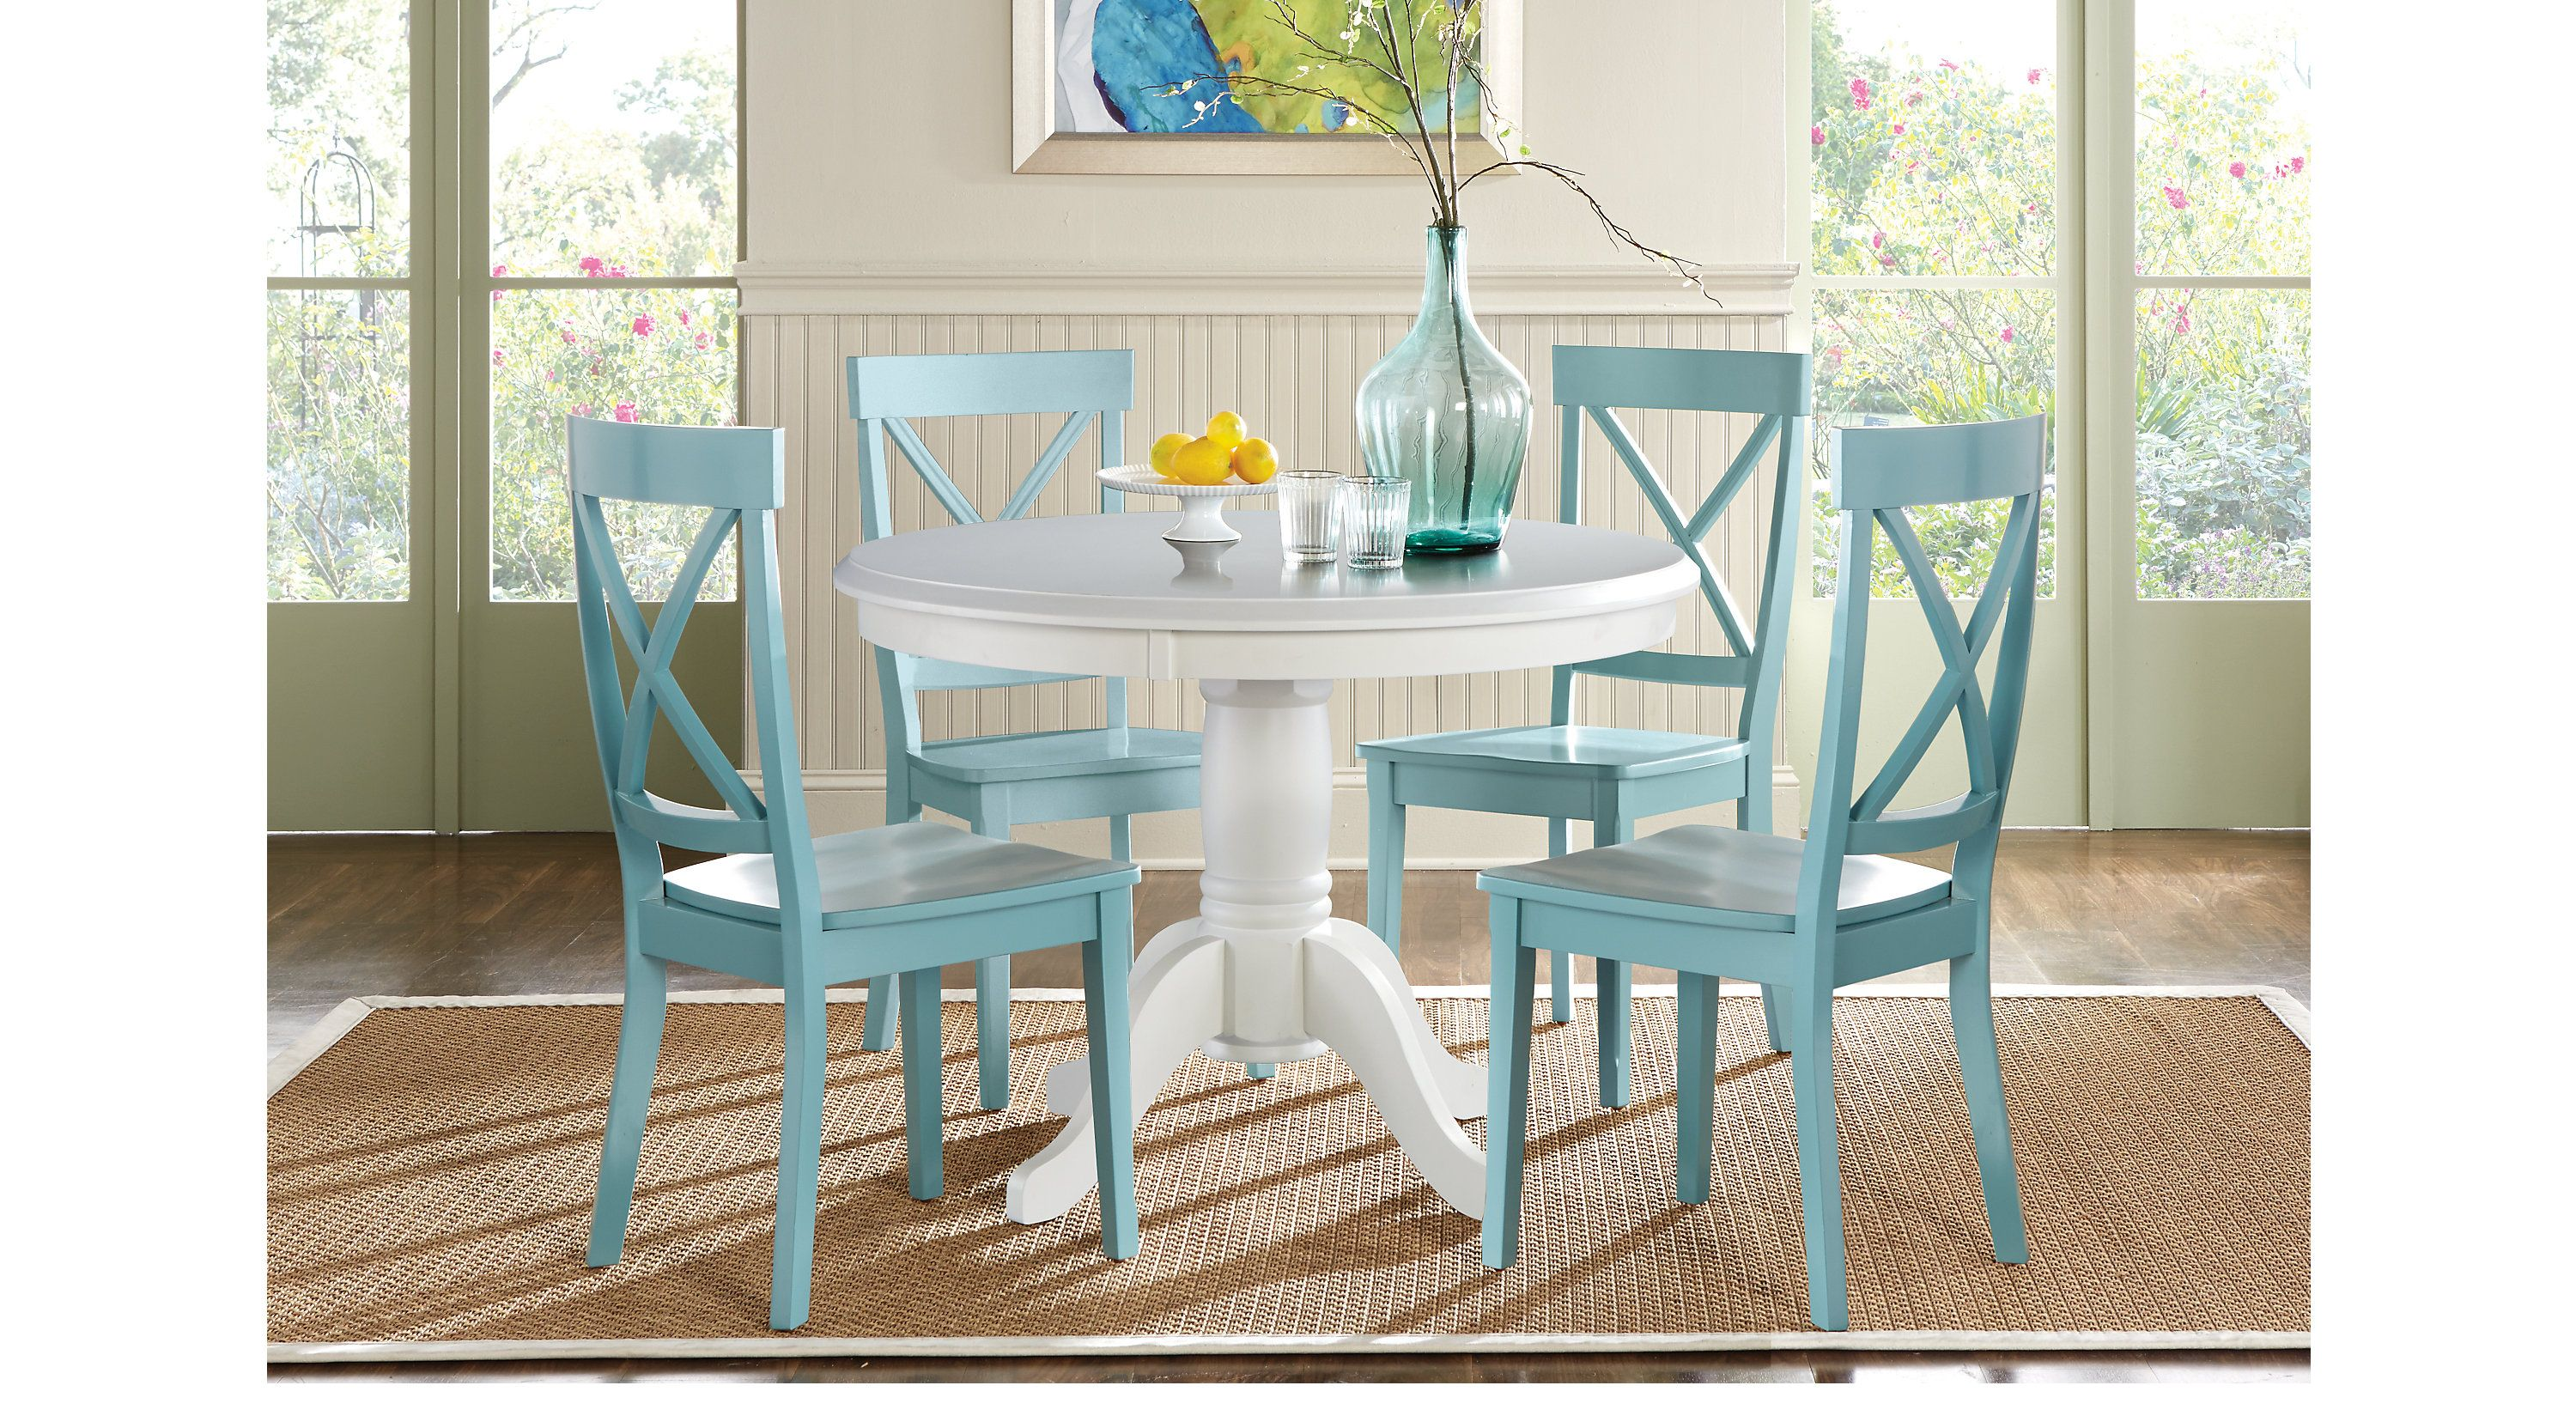 Dining Room Sets Rooms To Go Brynwood White 5 Pc Pedestal Dining Set Blue Chairs 8228218p Dining Room Sets Round Dining Room Round Dining Set